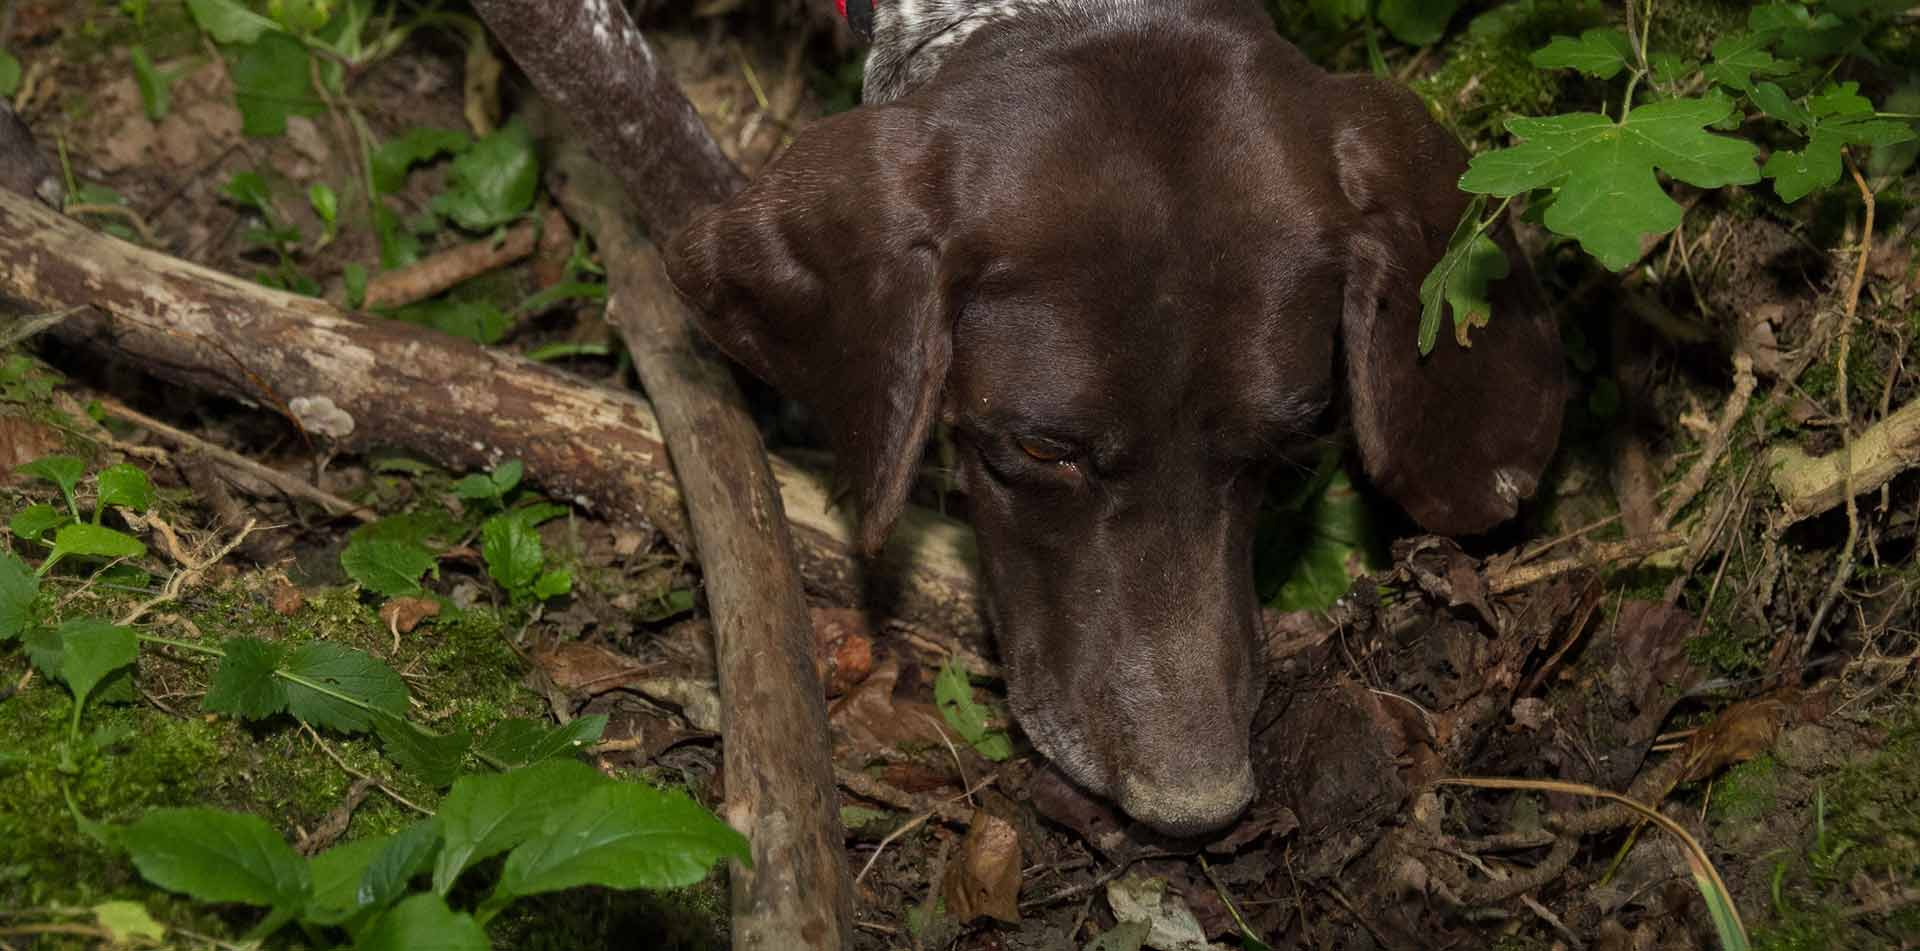 Europe Croatia Istria brown dog sniffing while truffle hunting in woods - luxury vacation destinations